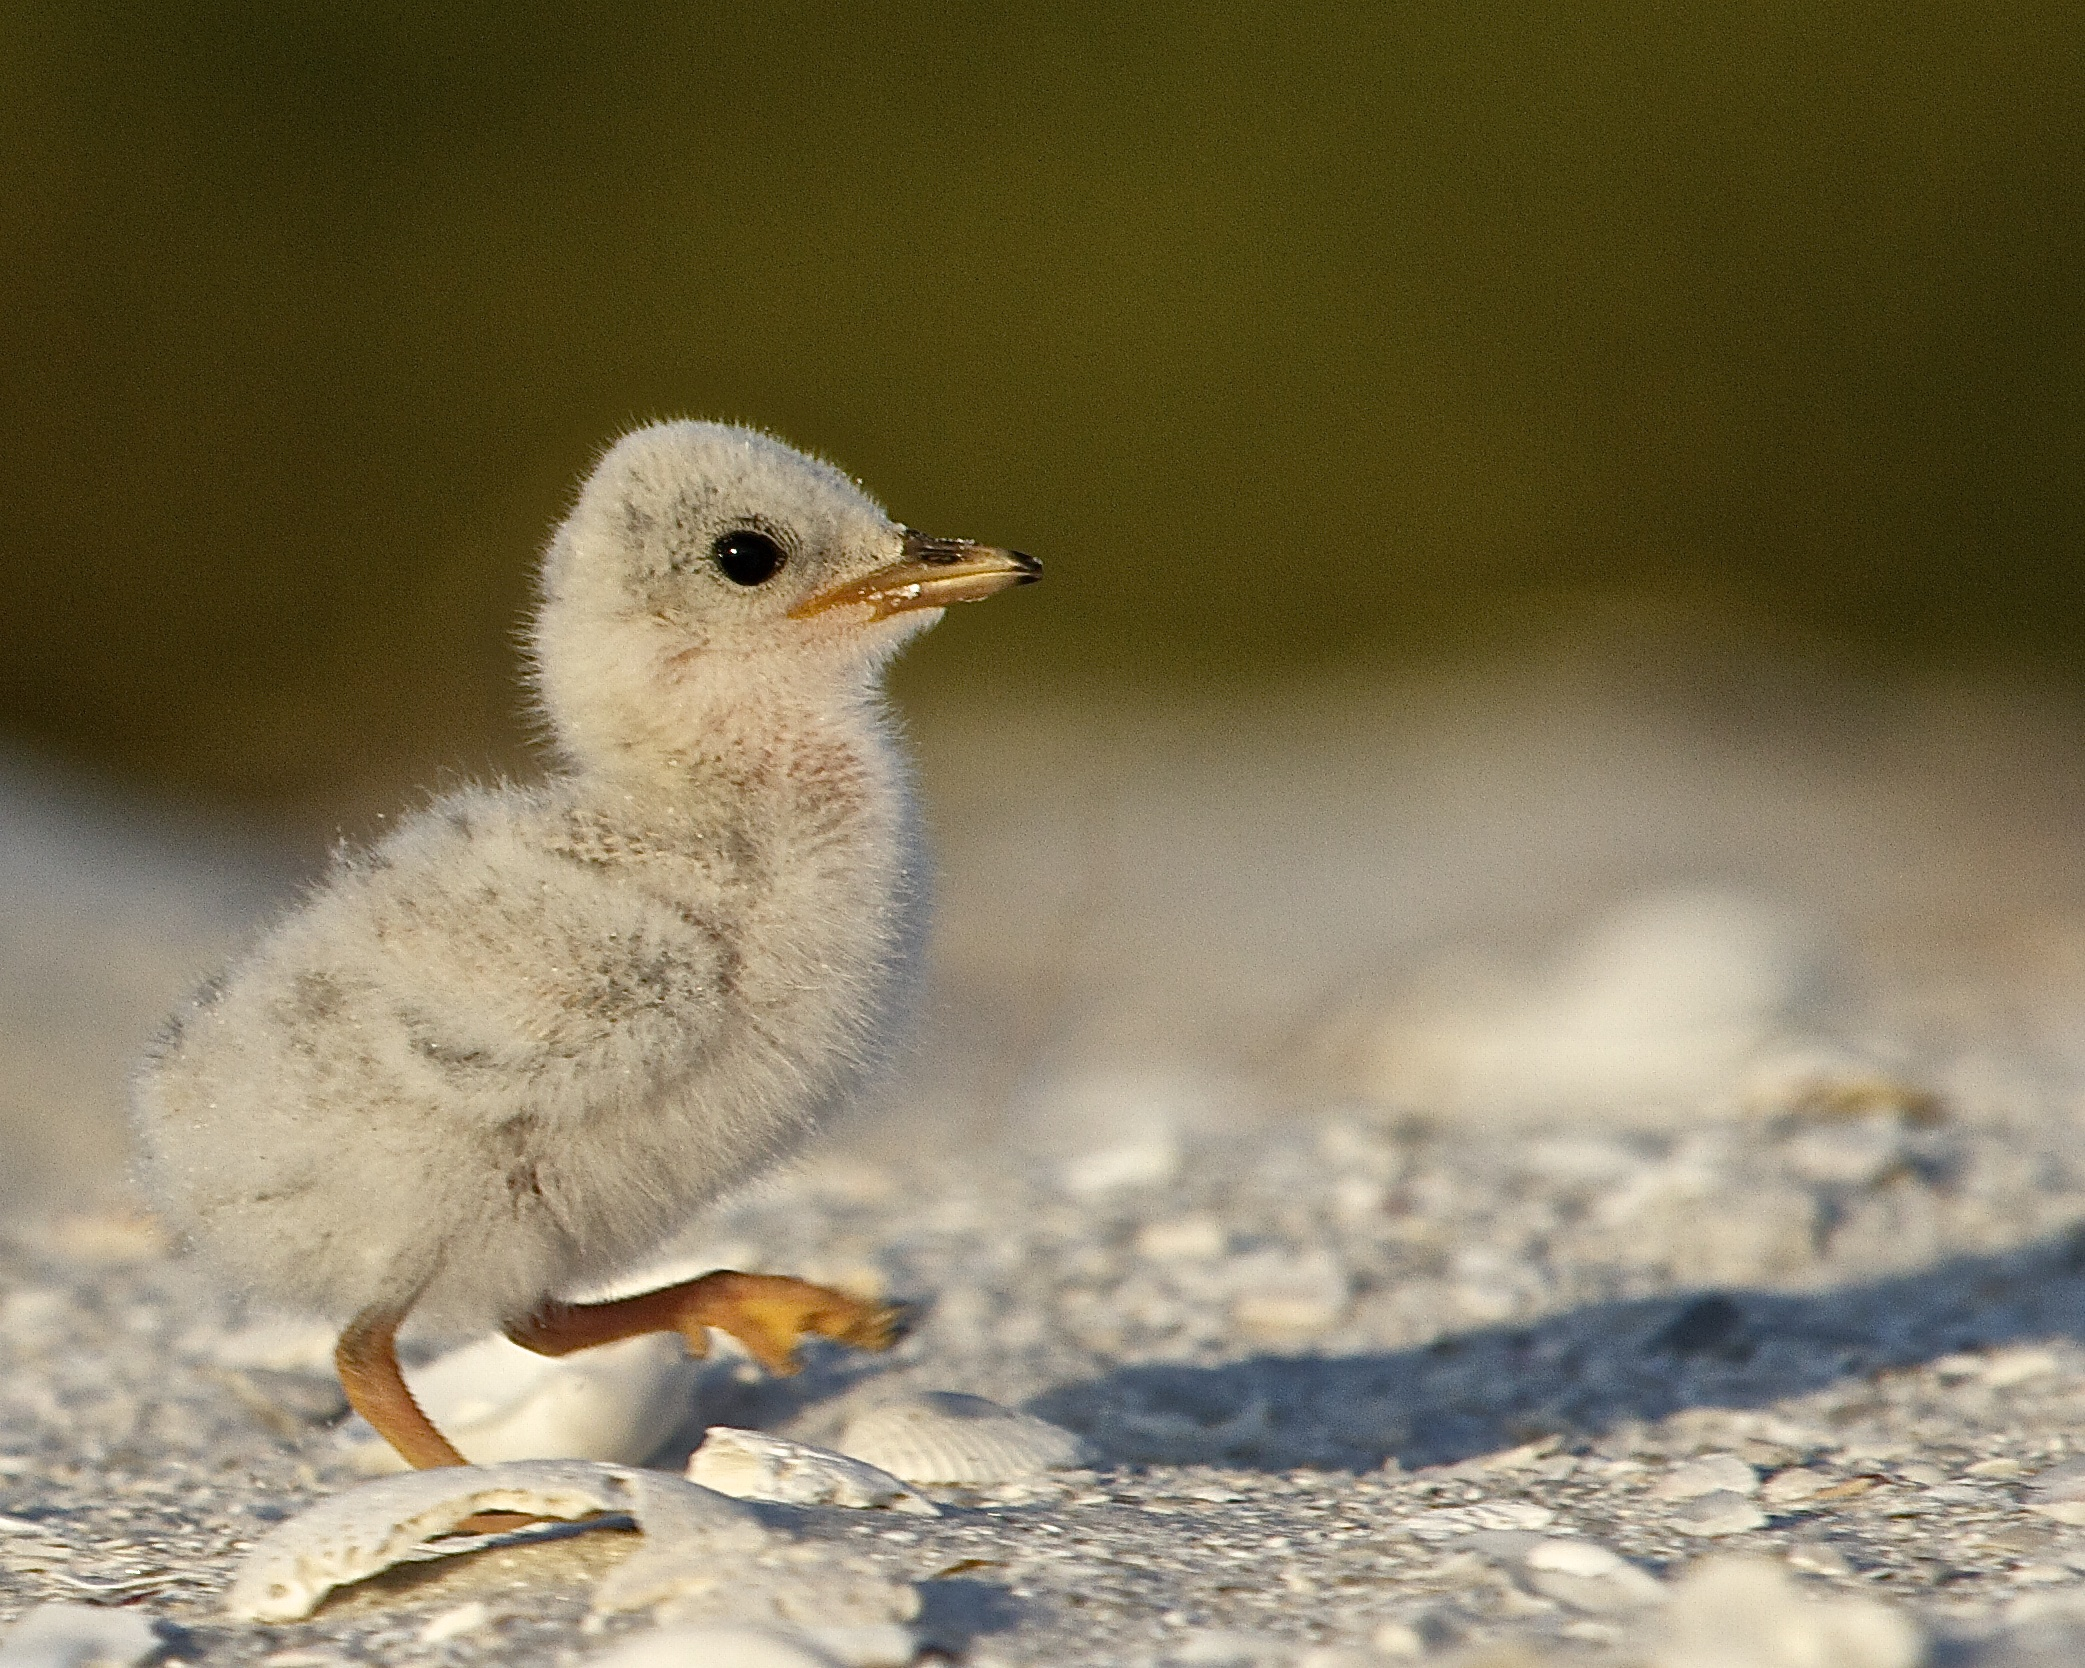 A hatchling Least Tern's first steps.